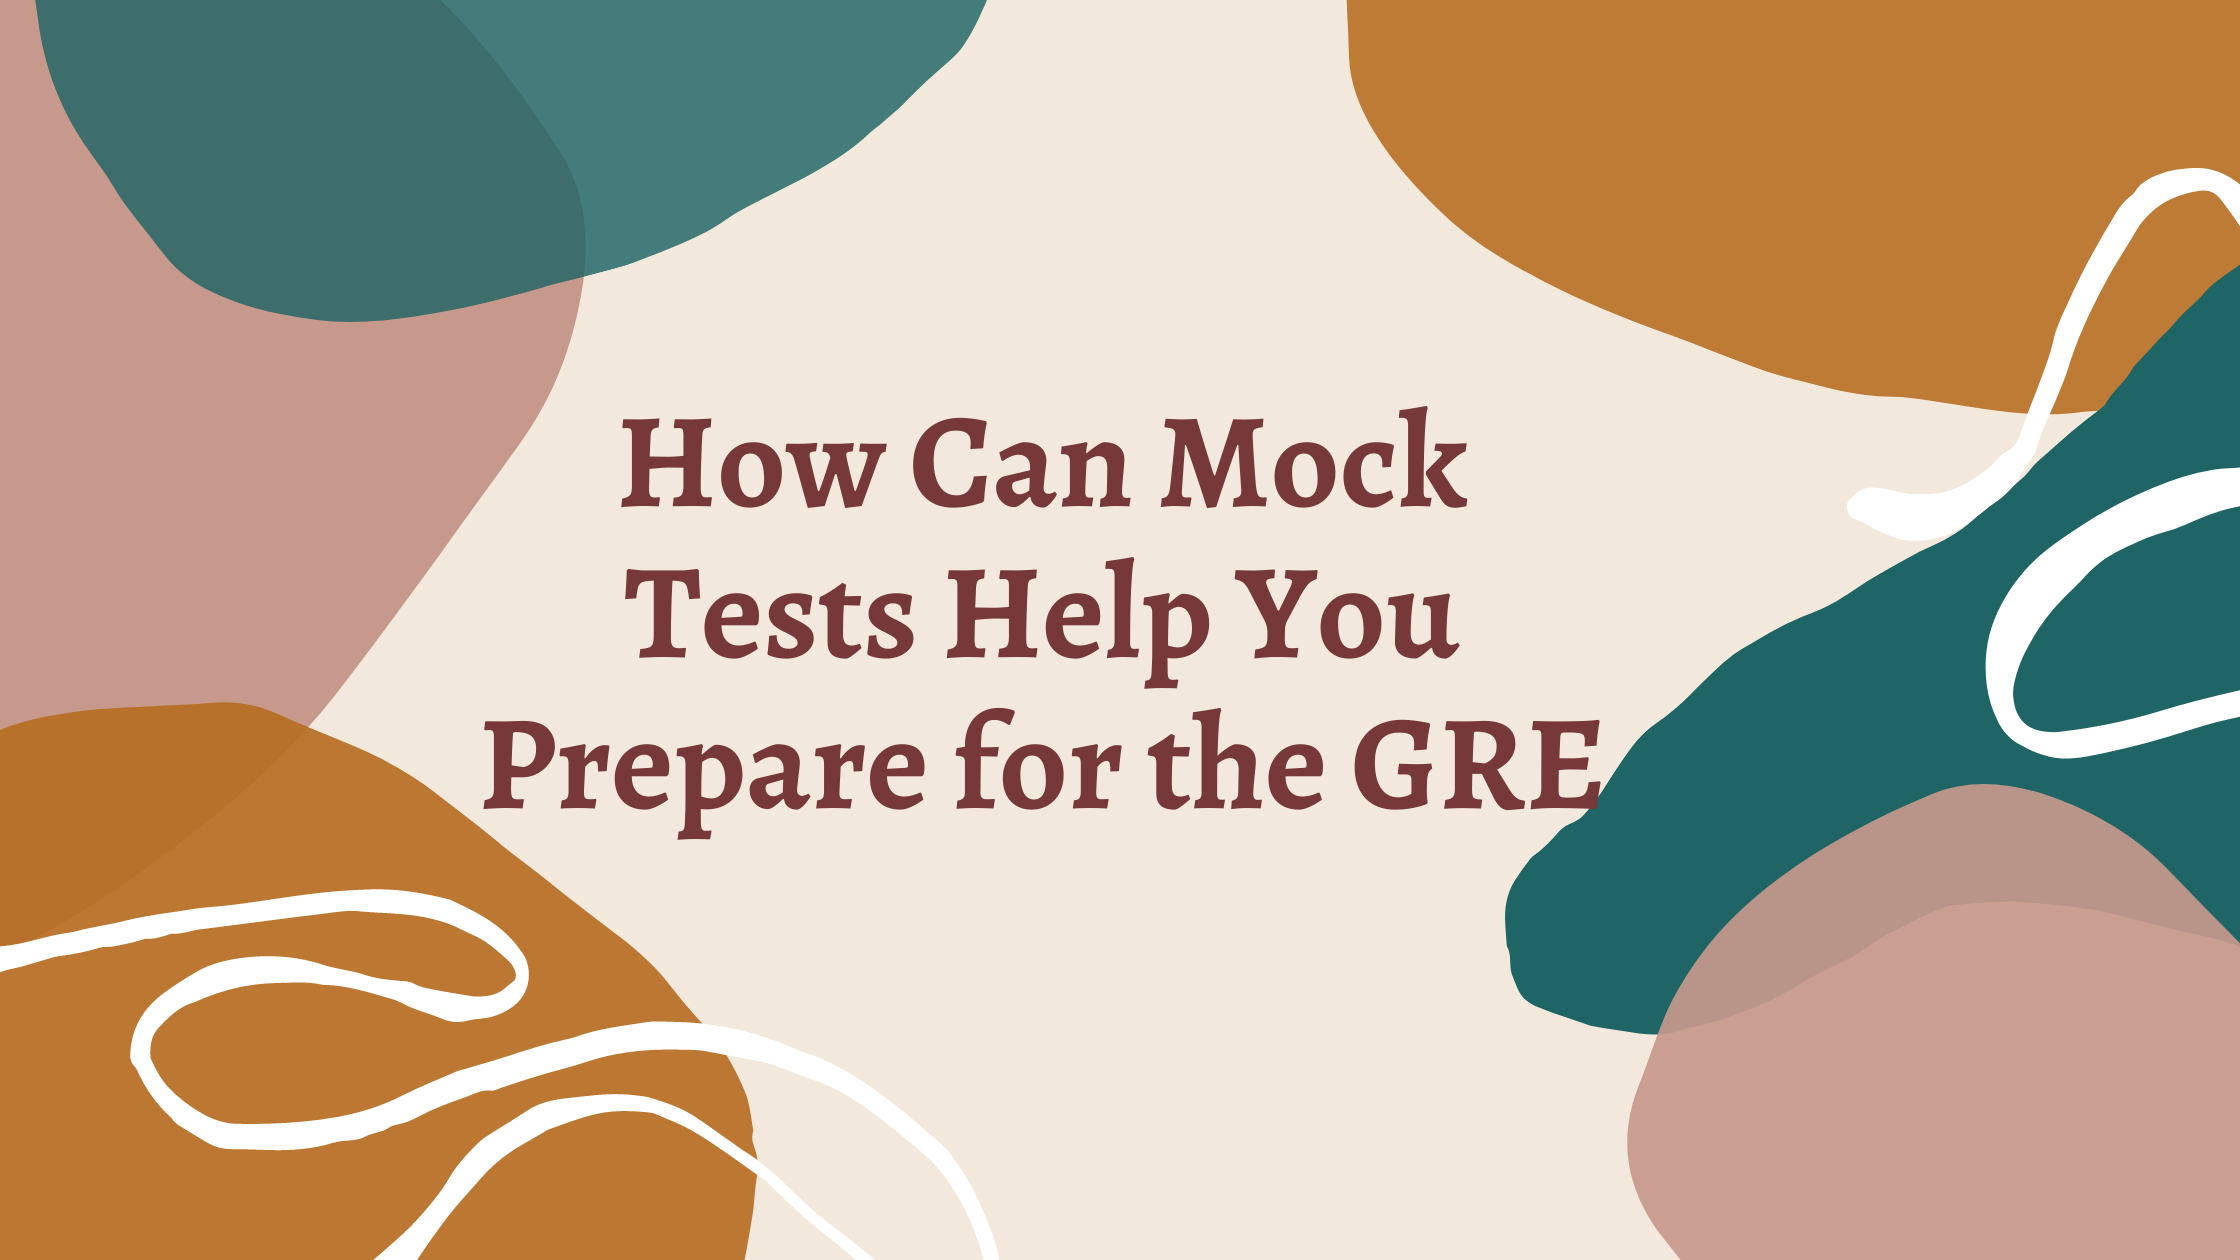 How Can Mock Tests Help You Prepare for the GRE